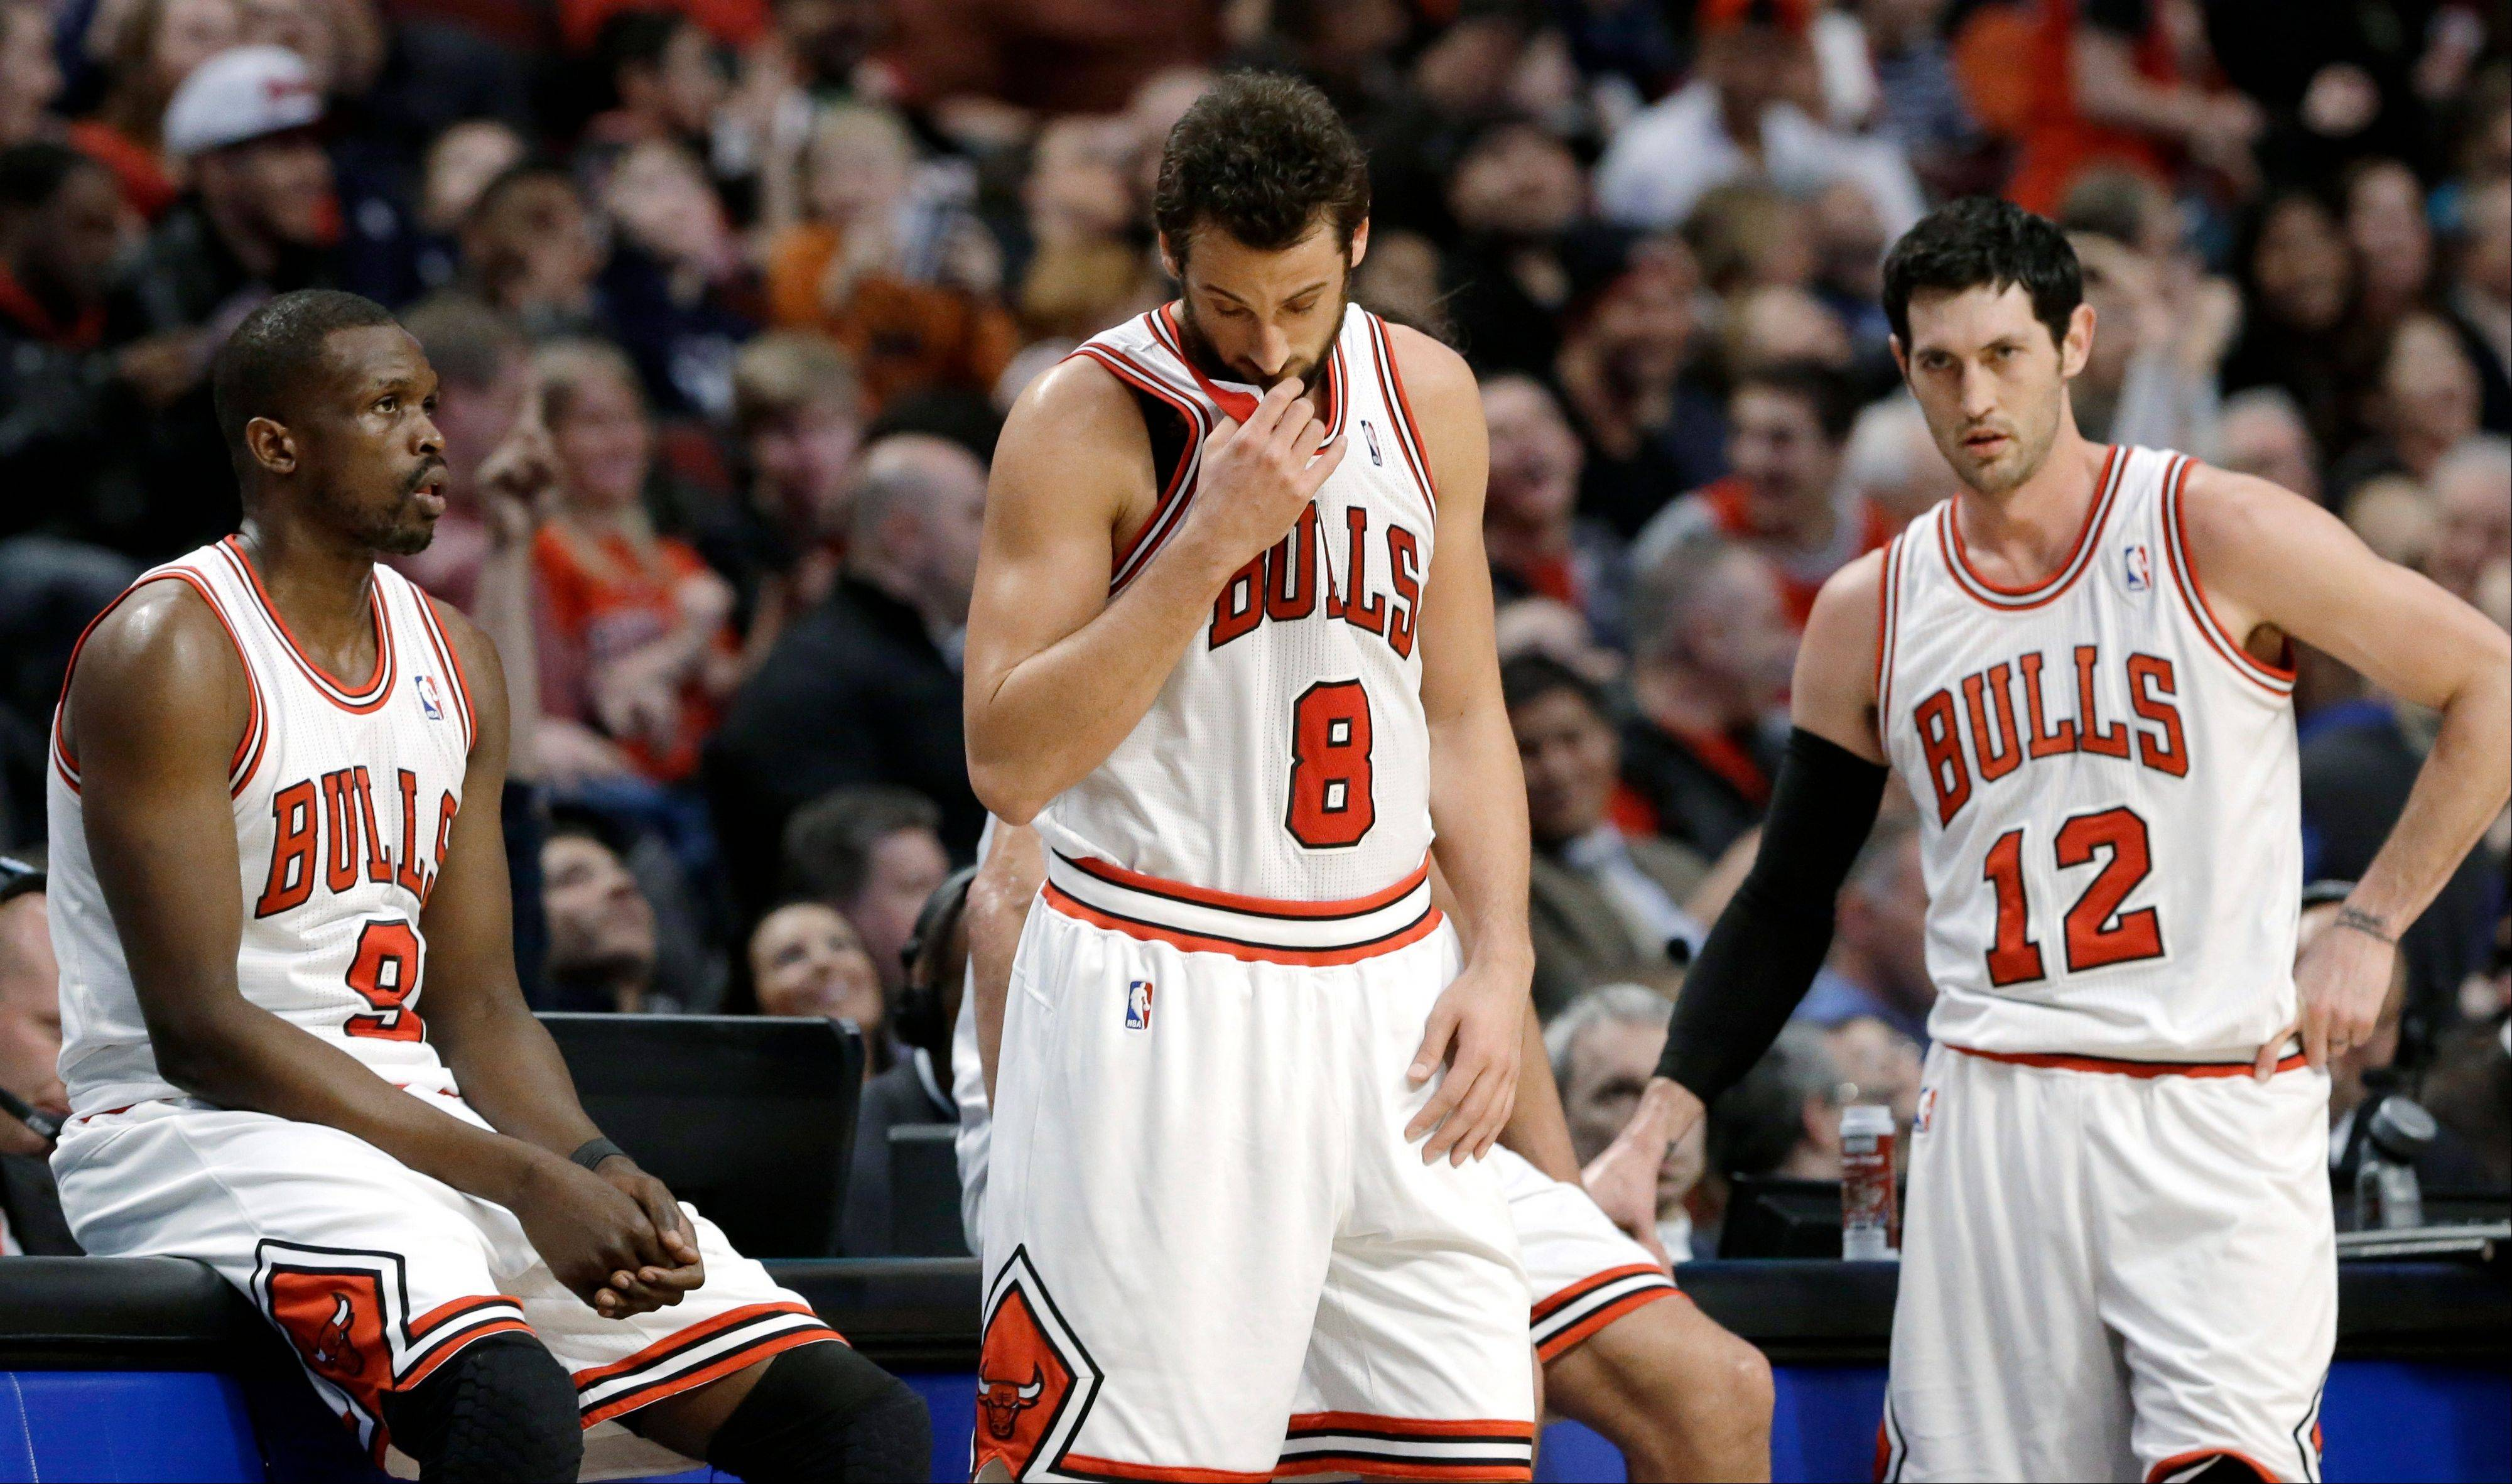 Chicago Bulls guard Marco Belinelli, center, forward Luol Deng, left, and guard Kirk Hinrich react during the second half of an NBA basketball game against the Portland Trail Blazers in Chicago on Thursday, March 21, 2013. The Trail Blazers won 99-89.